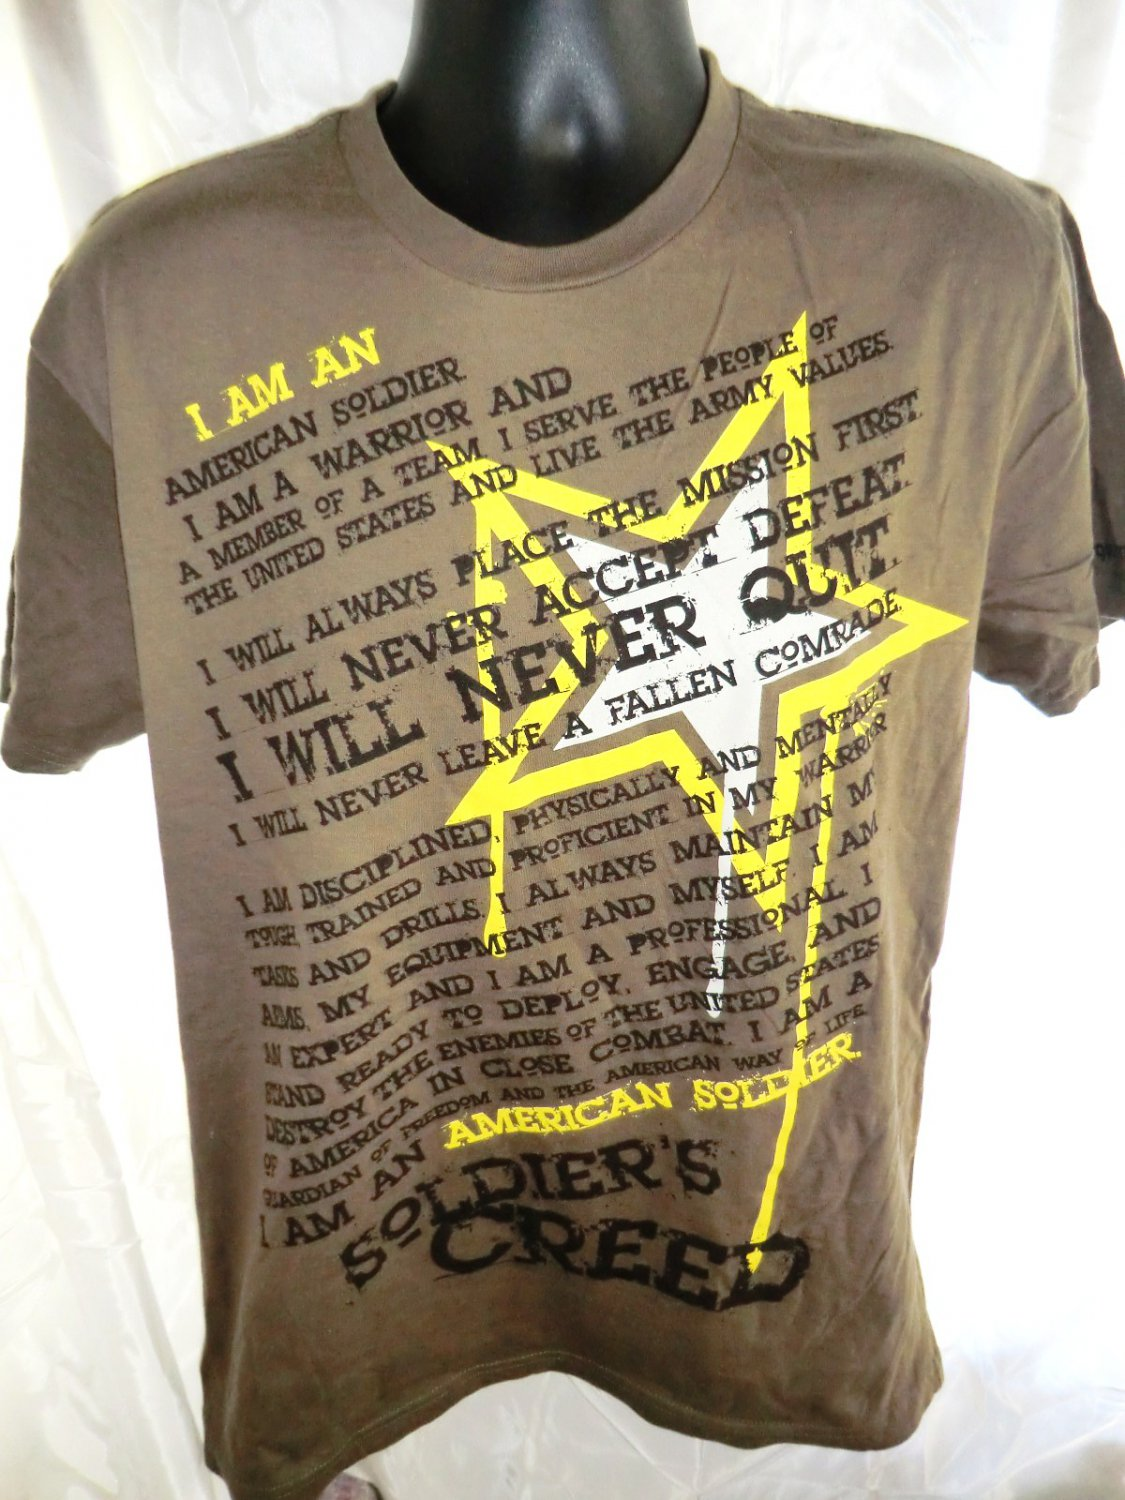 SOLD! SOLDIERS CREED US ARMY T-Shirt Size Medium/Large